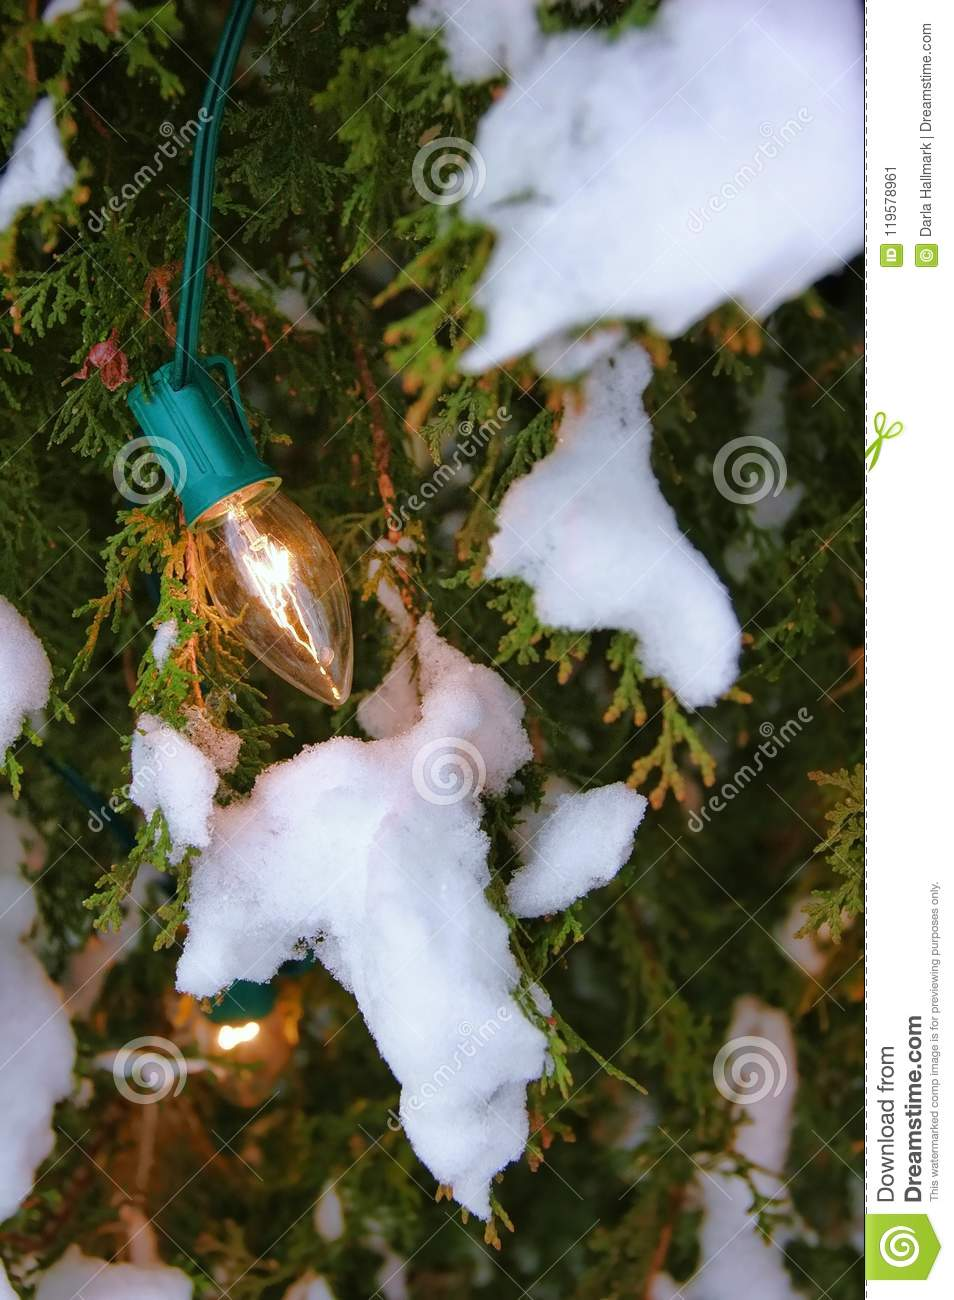 Nostalgia, Old Fashioned Christmas Lights On An Outdoor Tree, With ...